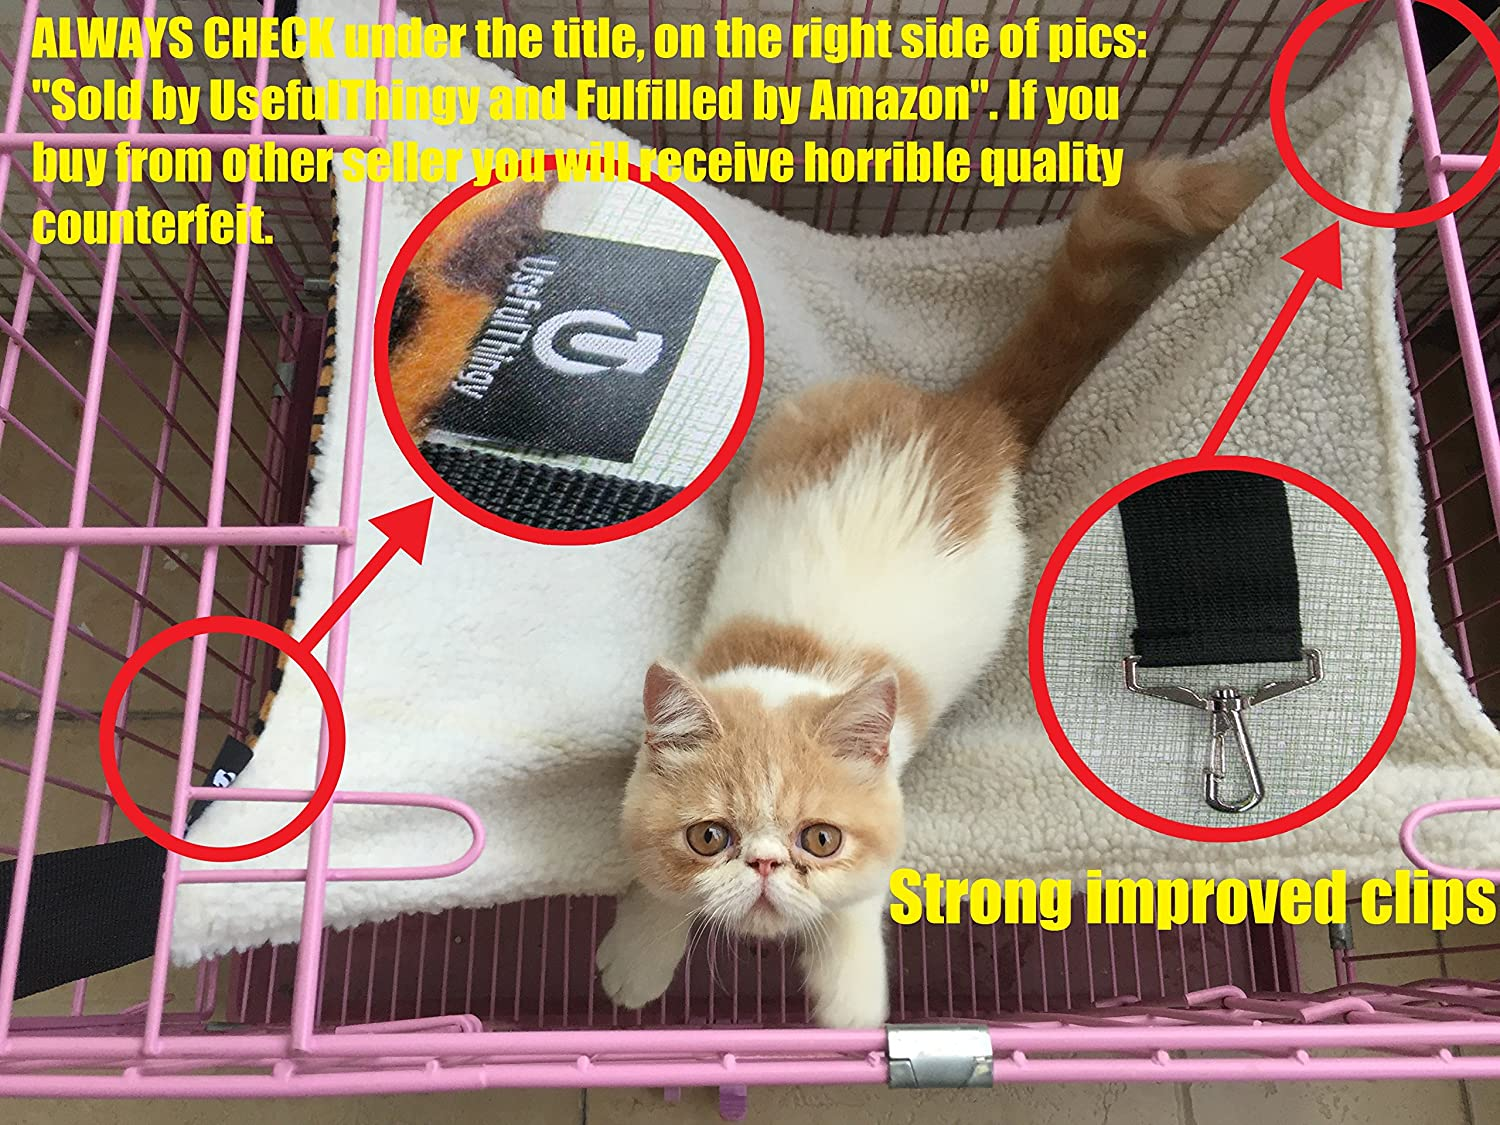 Easy to Attach to a Cage Rat Small Dogs or Other Pet Rabbit 3 Designs UsefulThingy Cat Hammock//Ferret